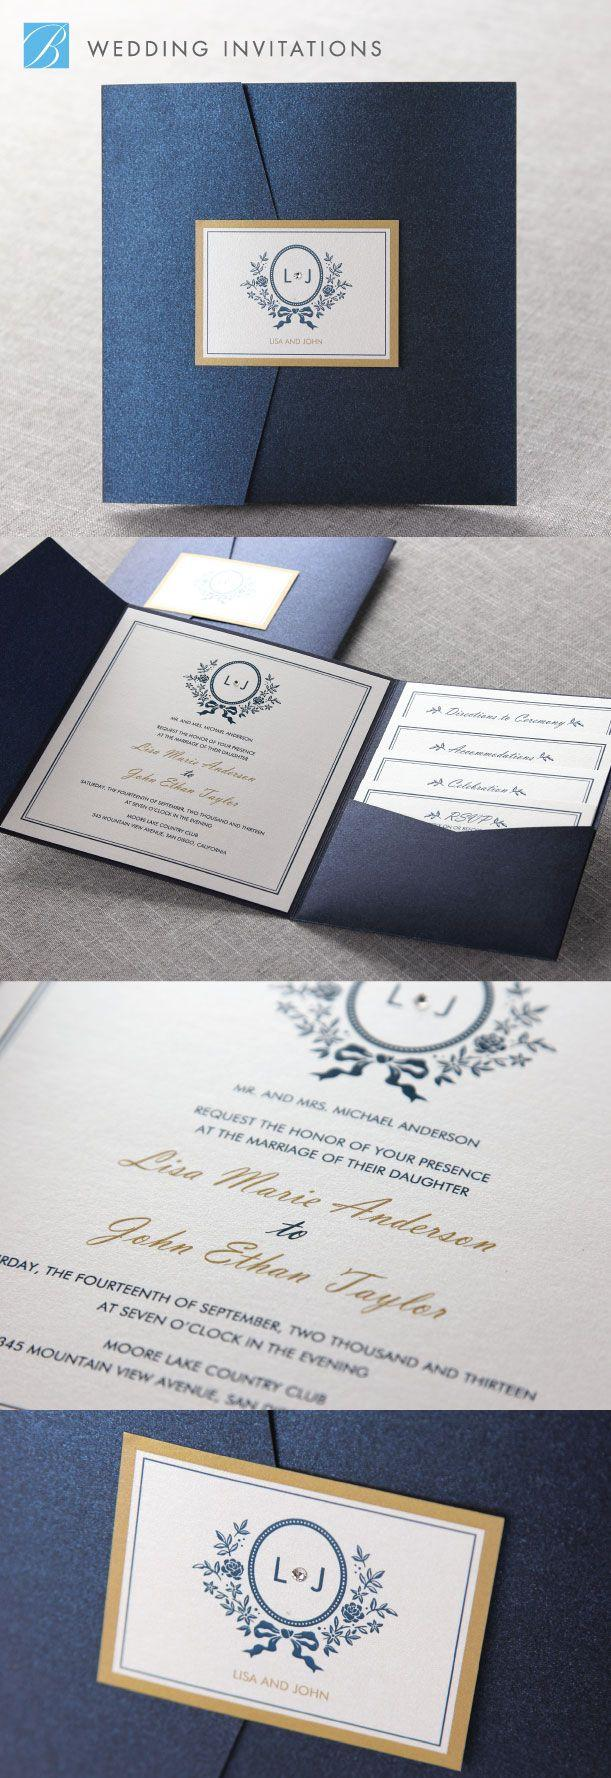 زفاف - Paper, Invitations, Save-the-Dates, Menu Cards Etc!